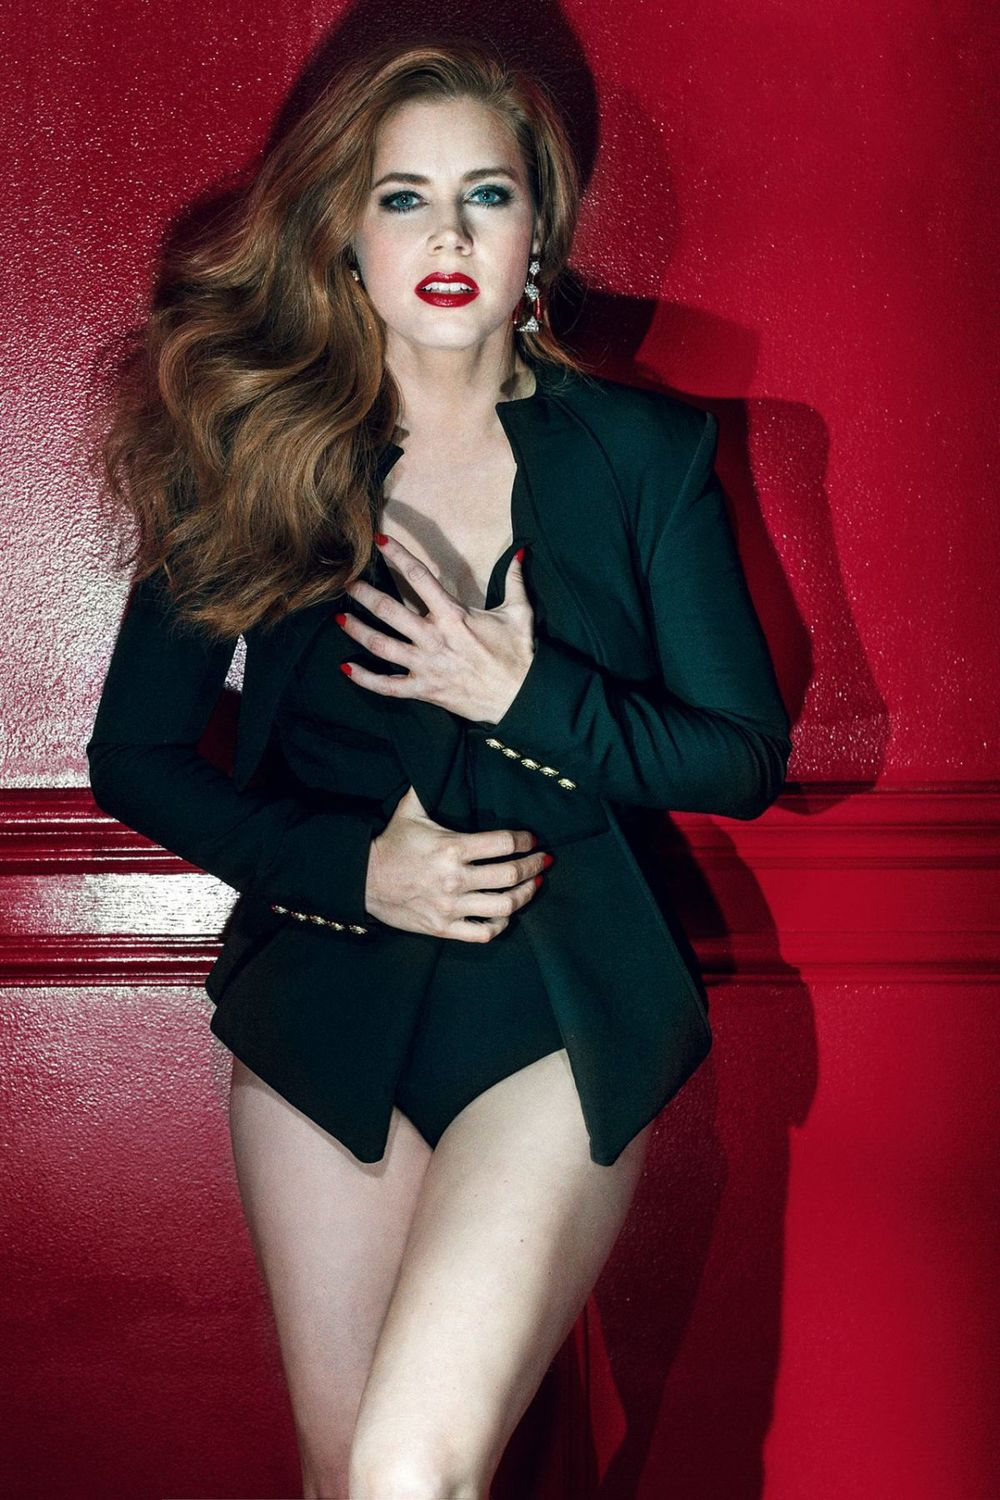 amy-adams-at-norman-jean-roy-photoshoot-for-gq-uk-april-2016-_1.jpg